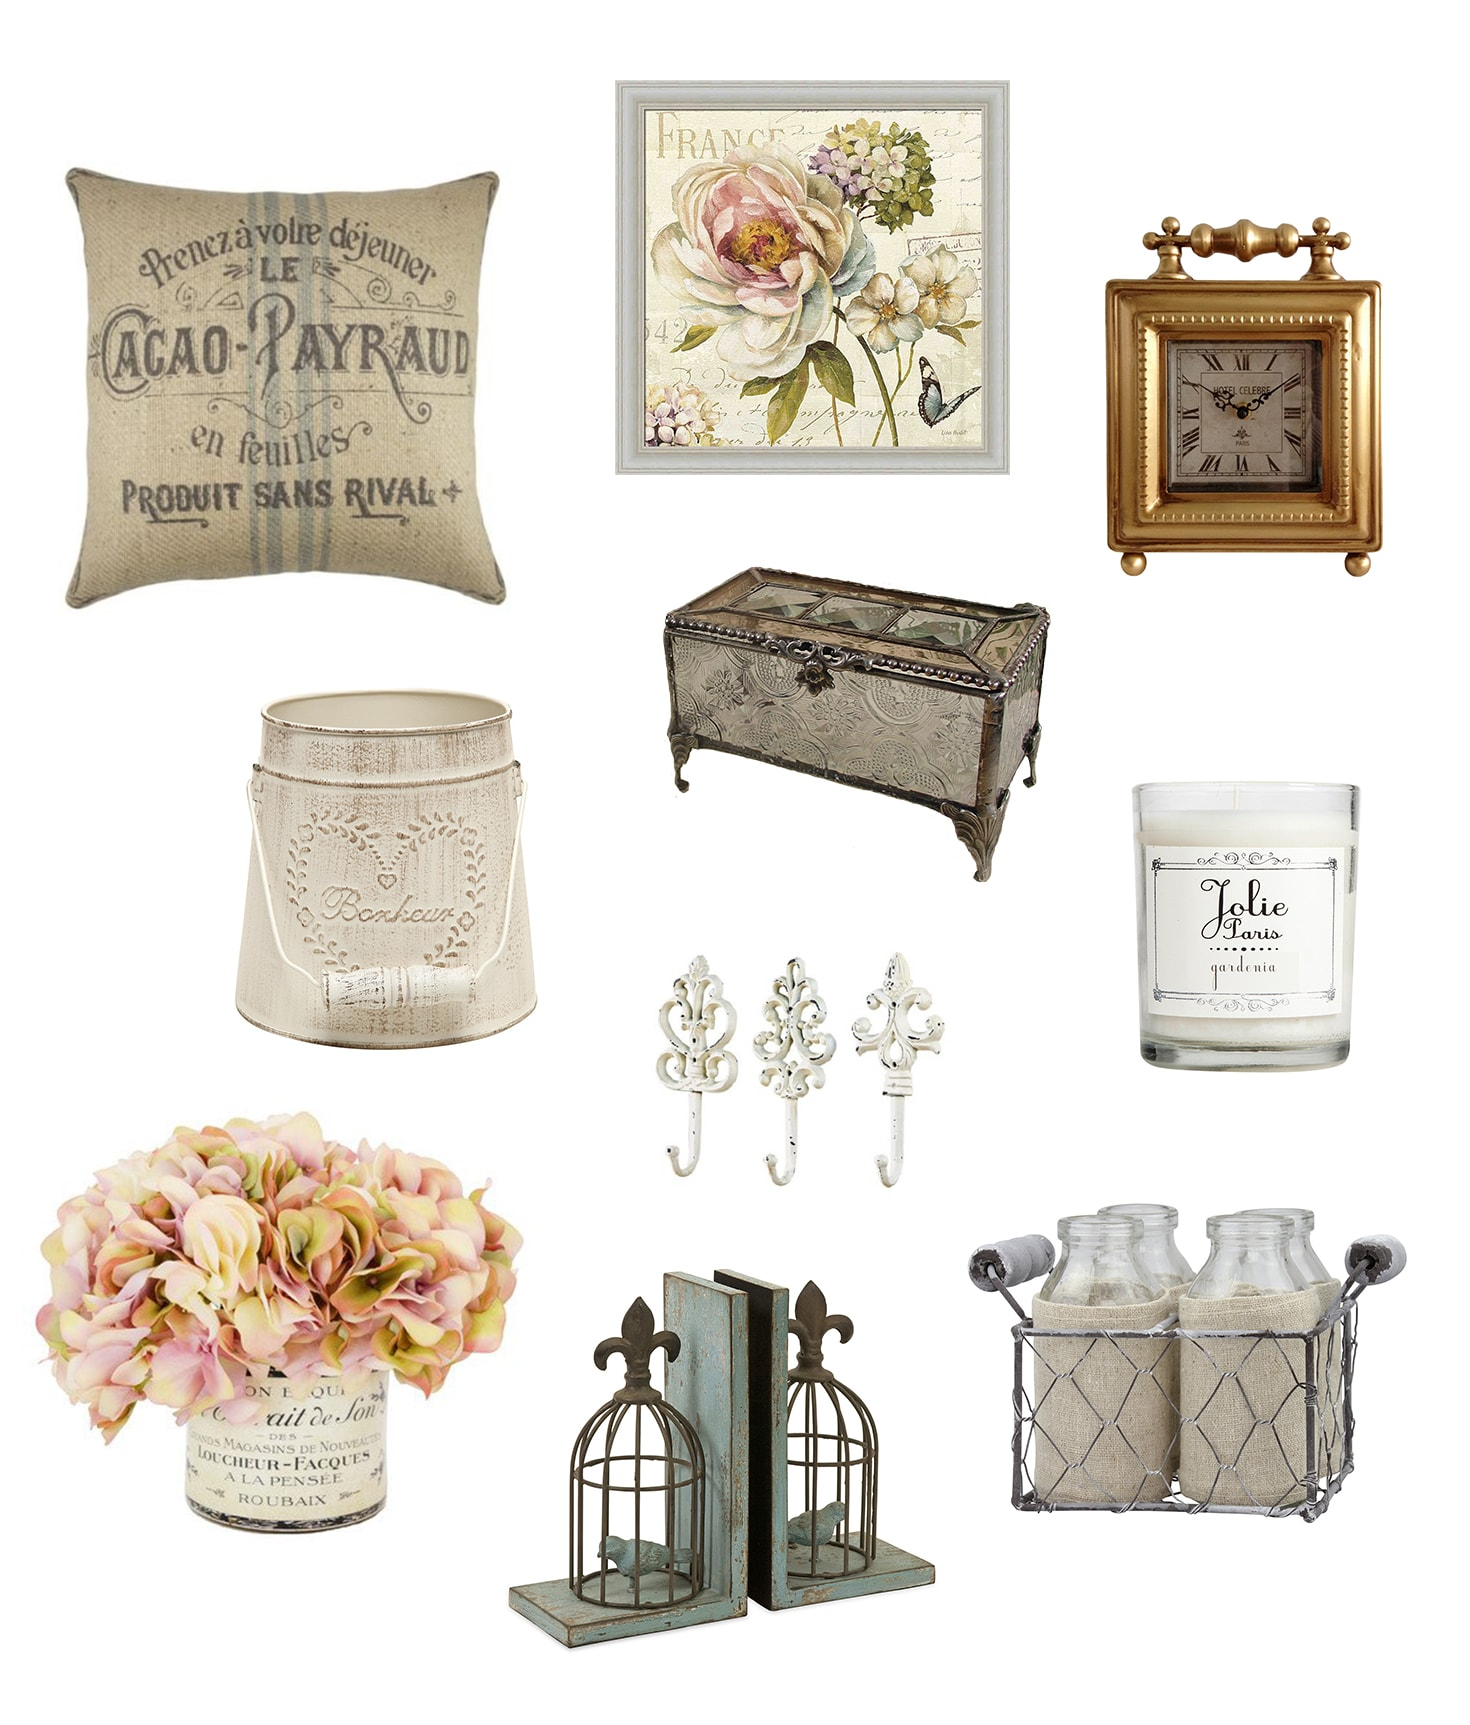 Gifts for Her: Charming French Inspired Hostess Gifts Shopping Guide